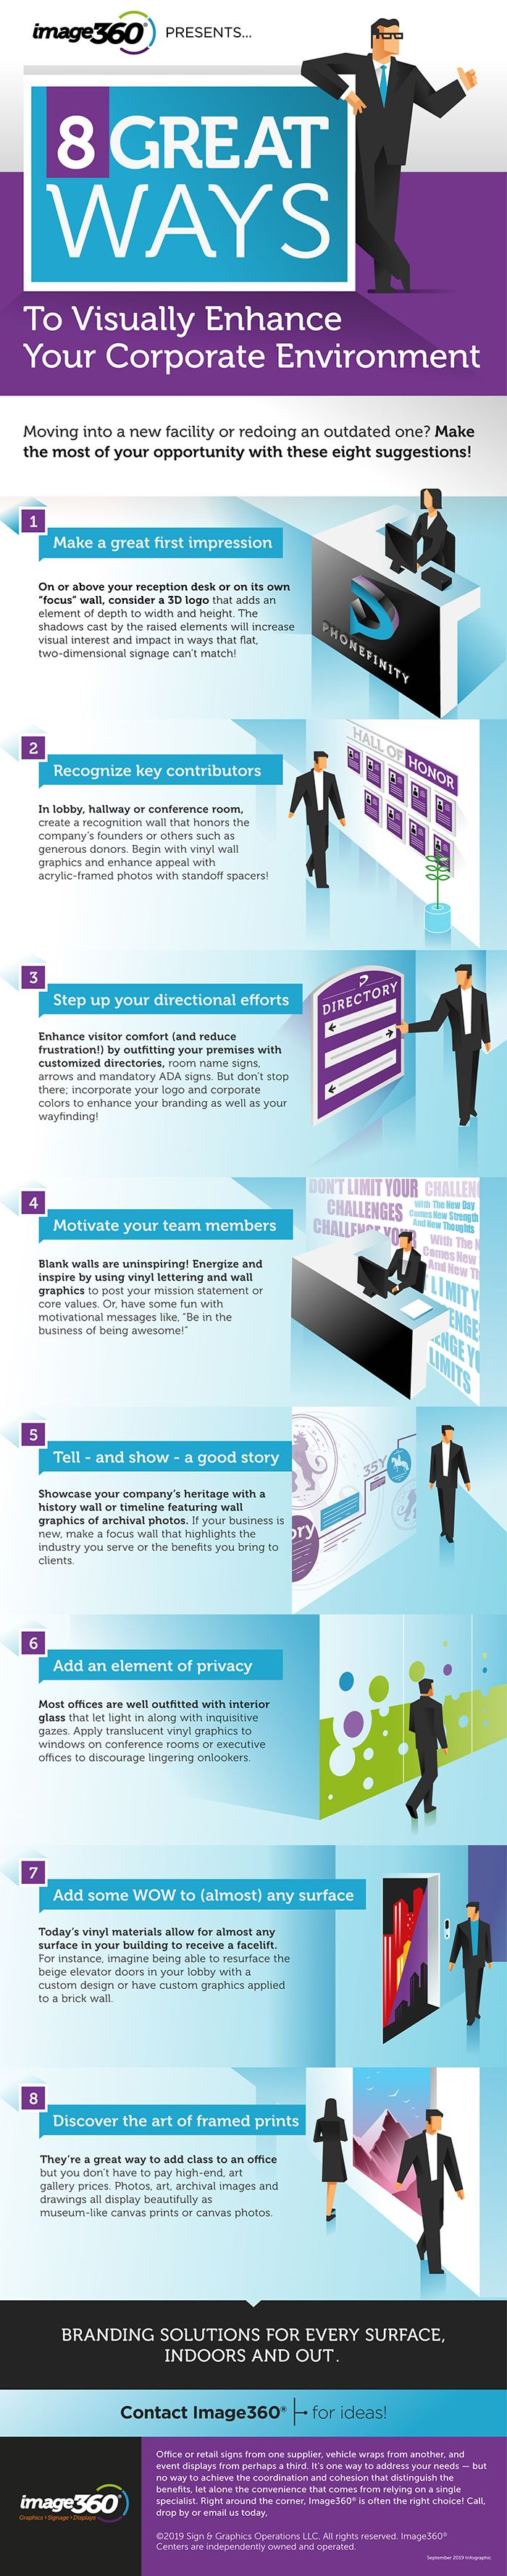 Image360 Infographic on 8 Great Ways to Visually Enhance Your Corporate Environment